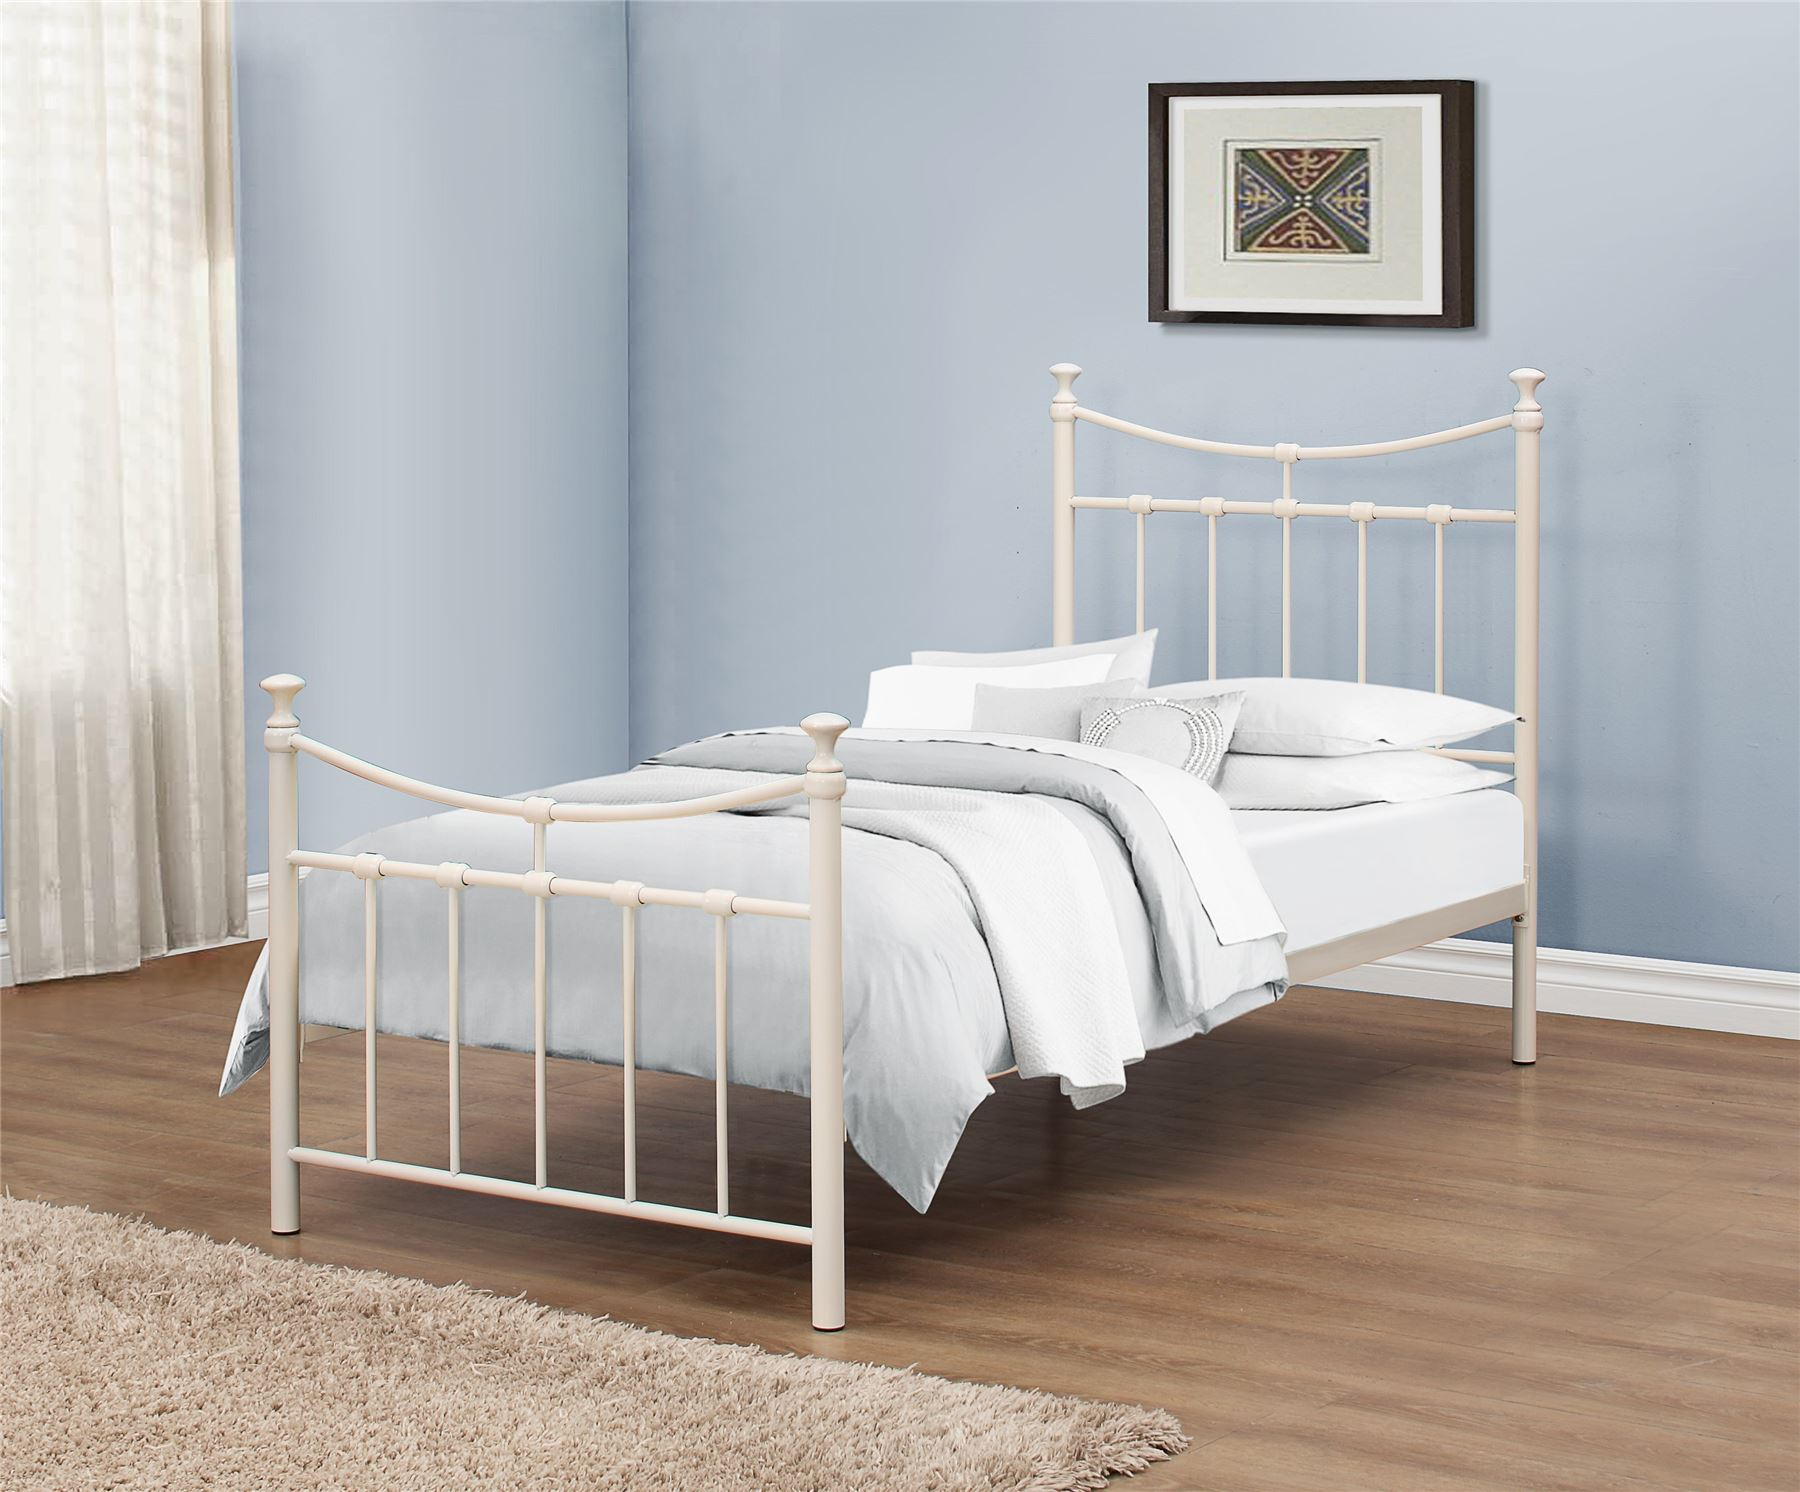 Emily 90cm 3ft Single Cream Ivory Metal Bed Frame Bedstead With Spring Base Www Robinsons Furniture